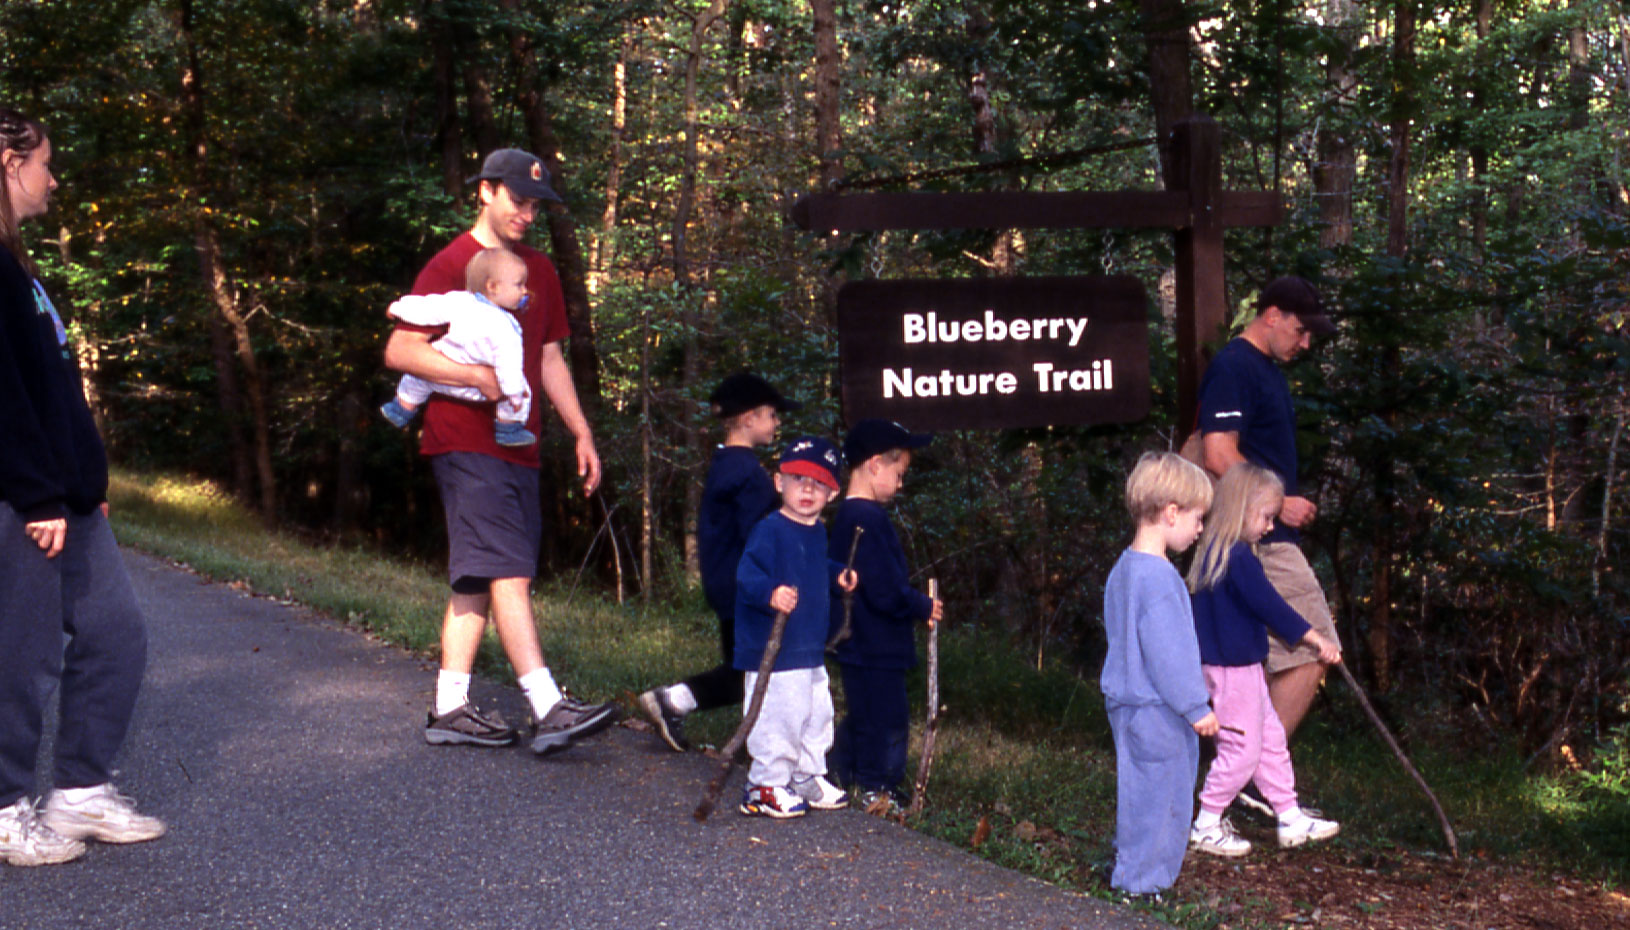 A spring hike on the Blueberry Nature Trail in Greenbelt Park